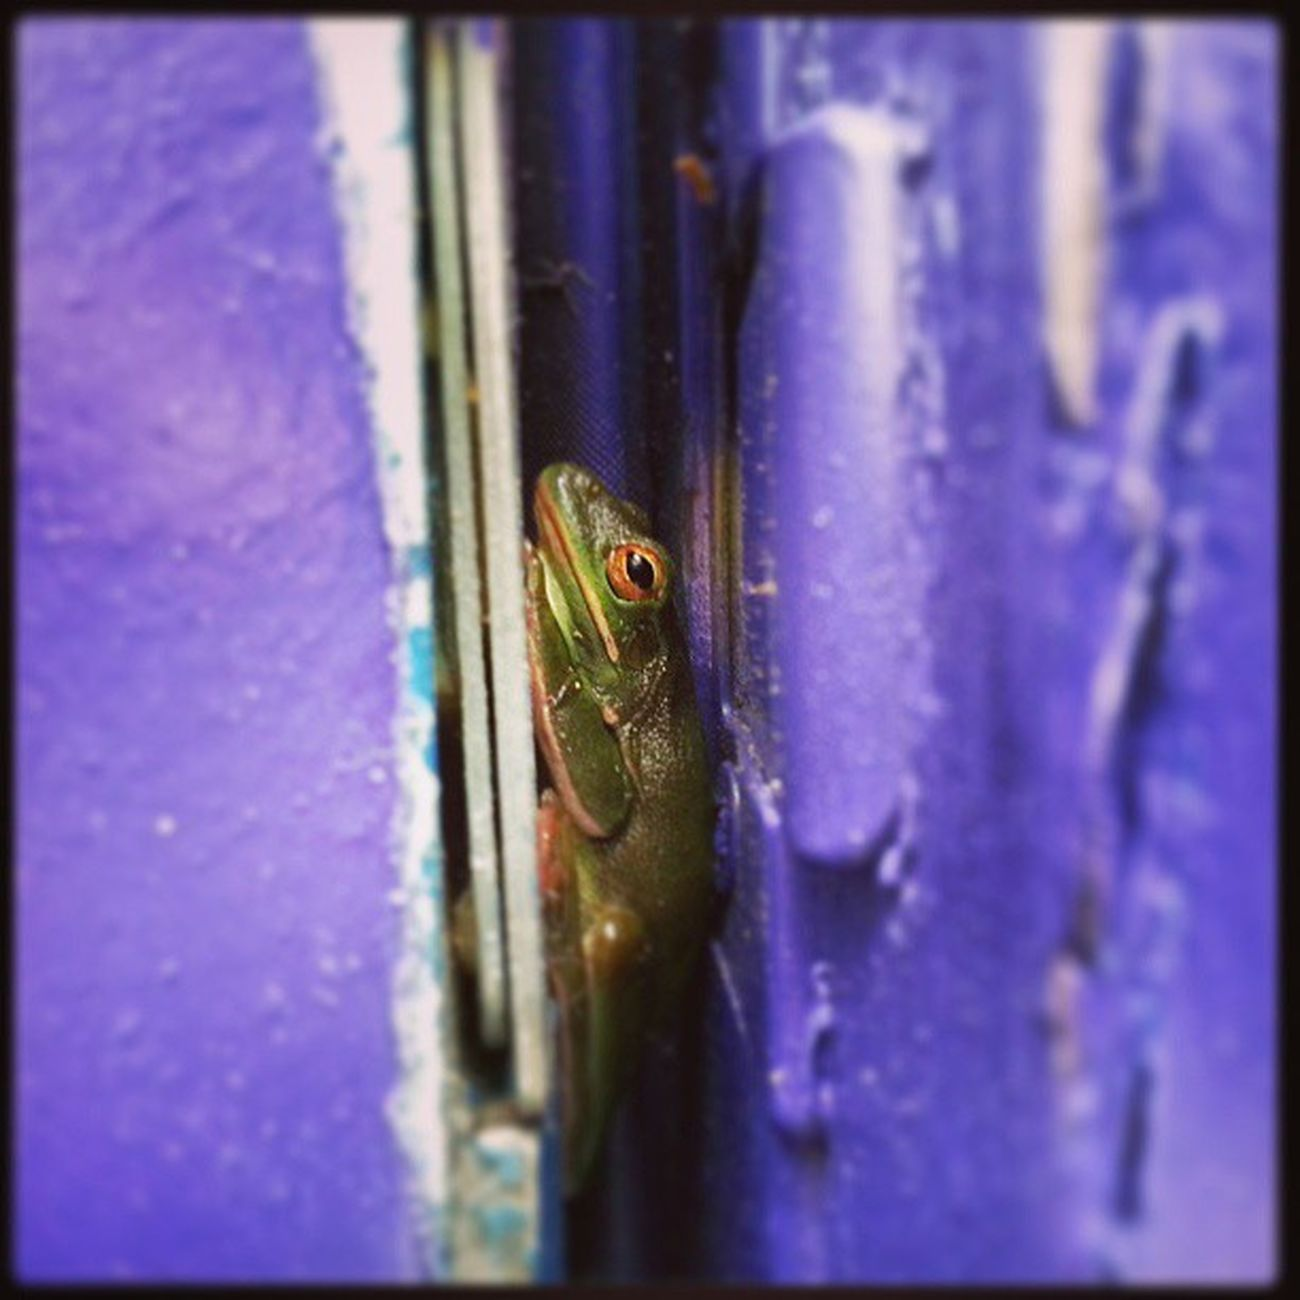 198/365 Deadboltfrog Purpledoor Creepin